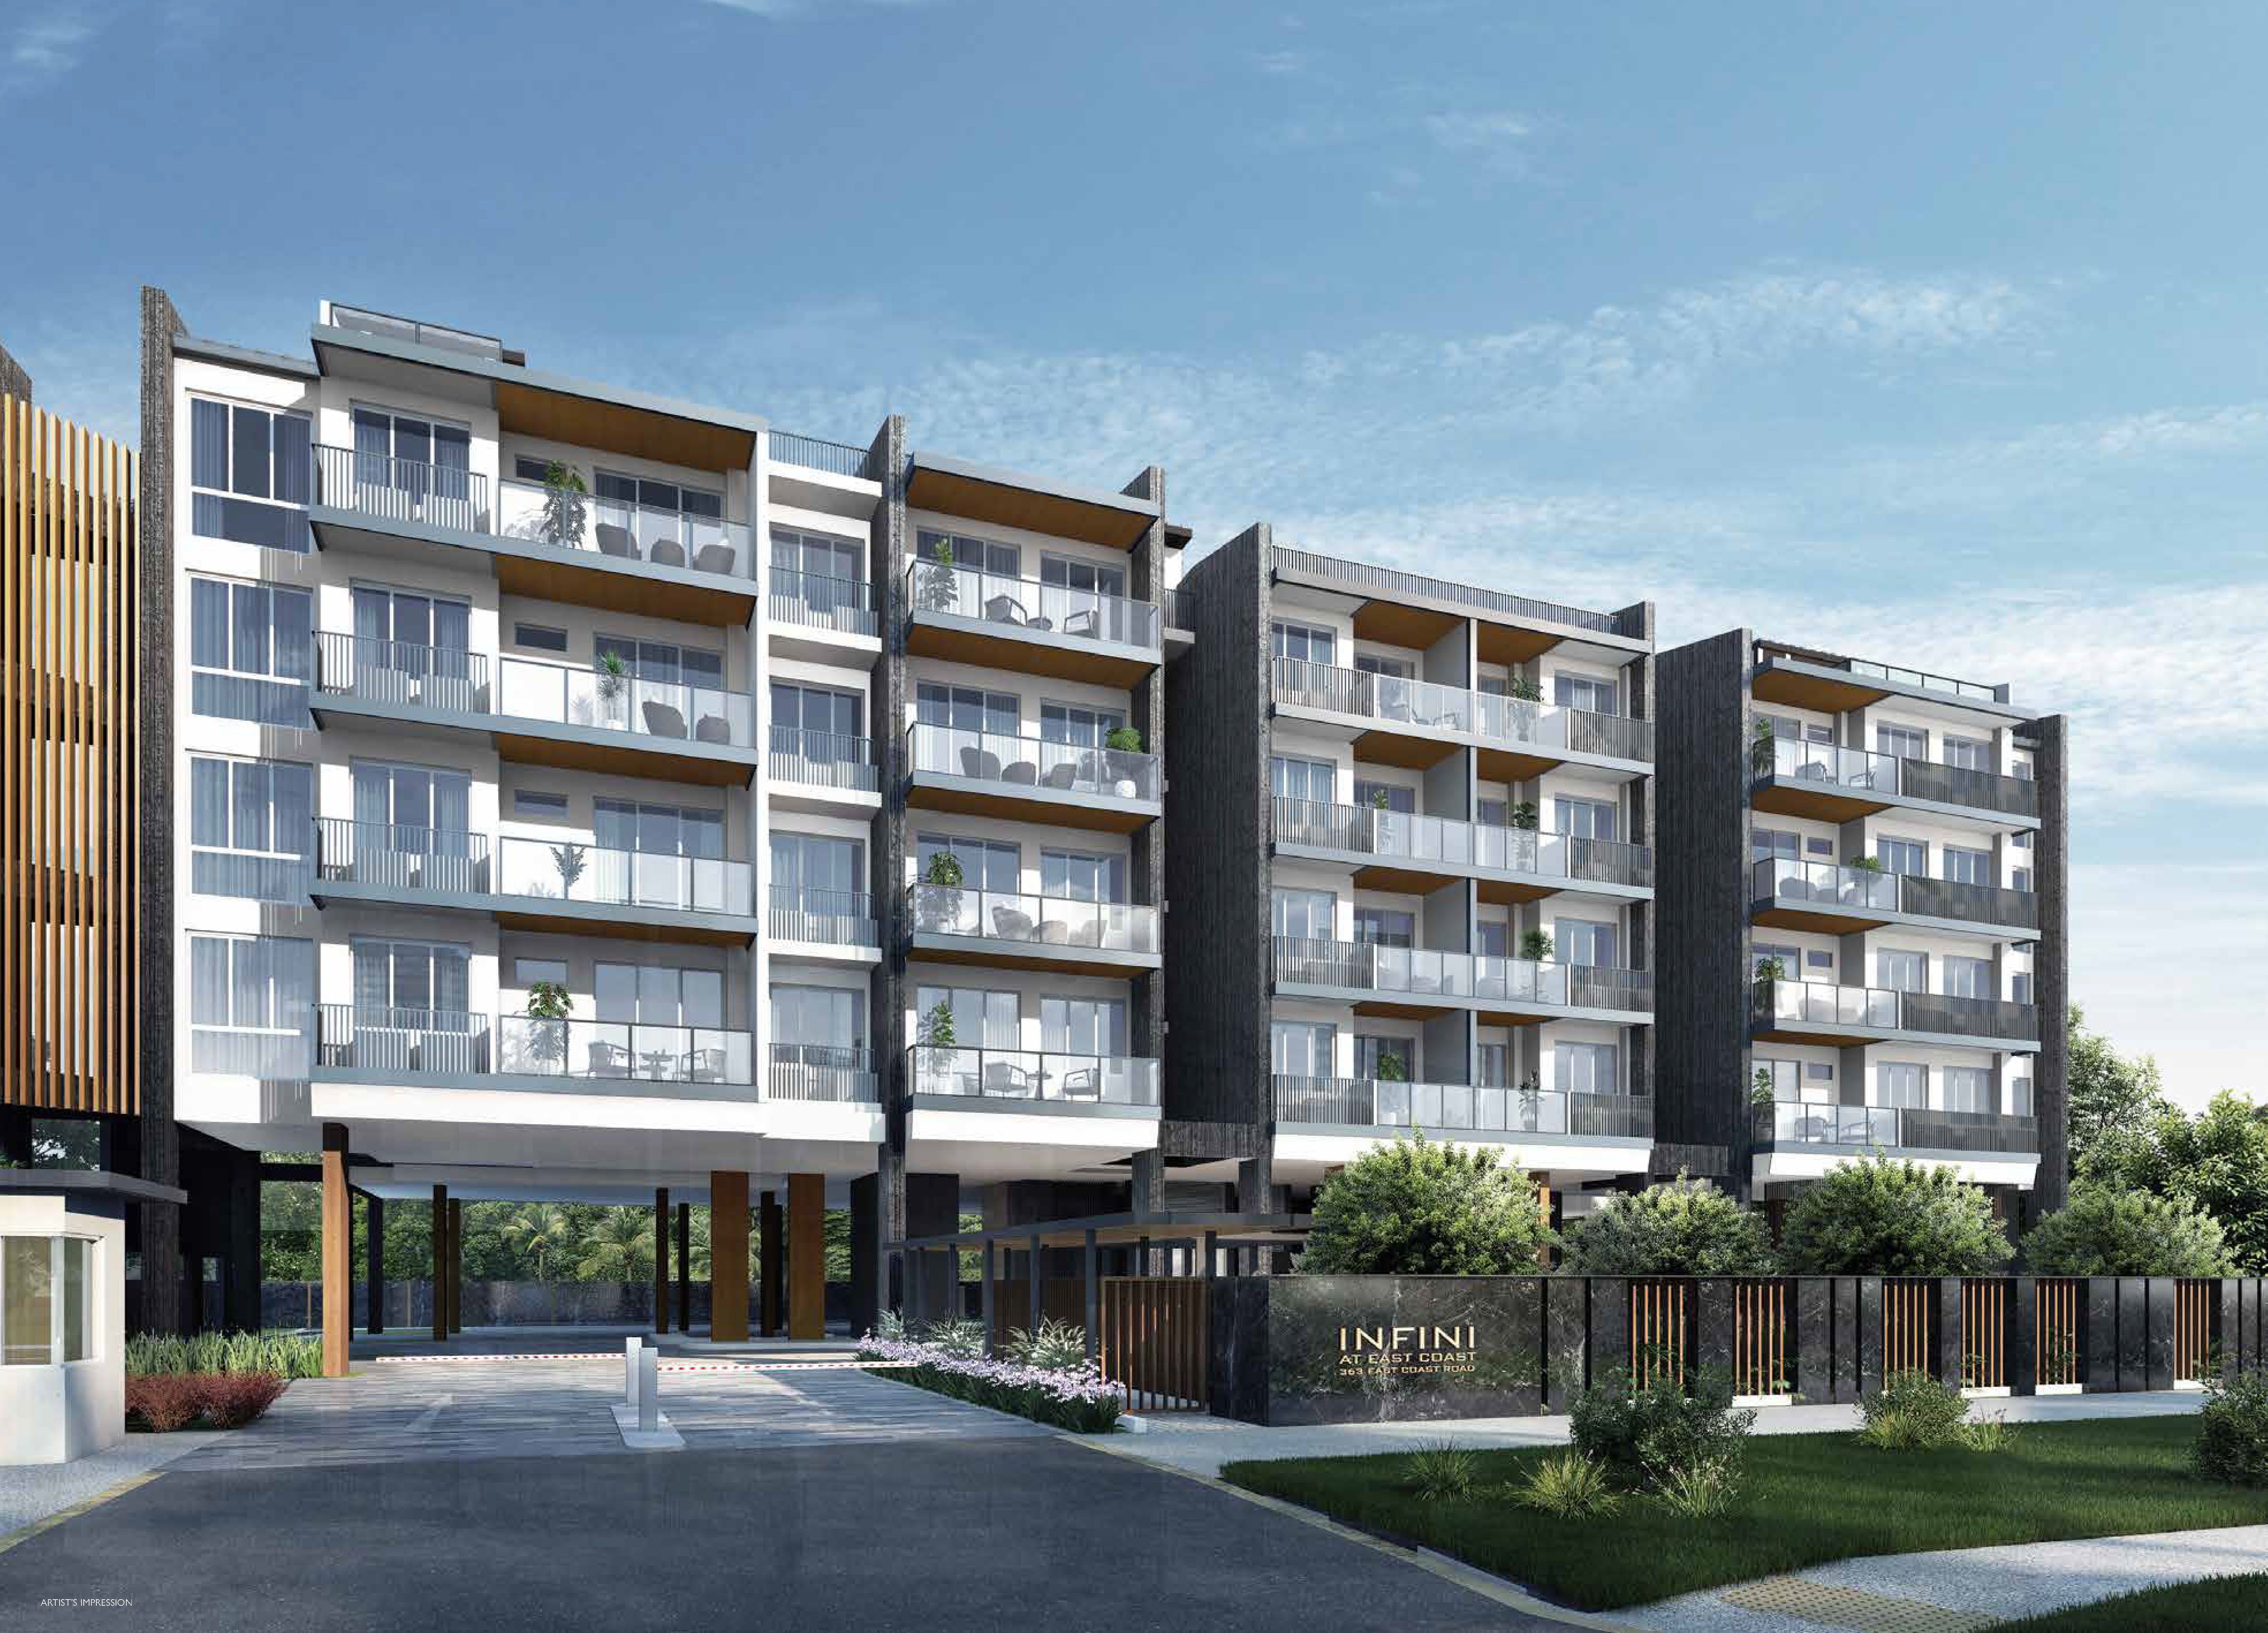 An artists' impression of Infini at East Coast